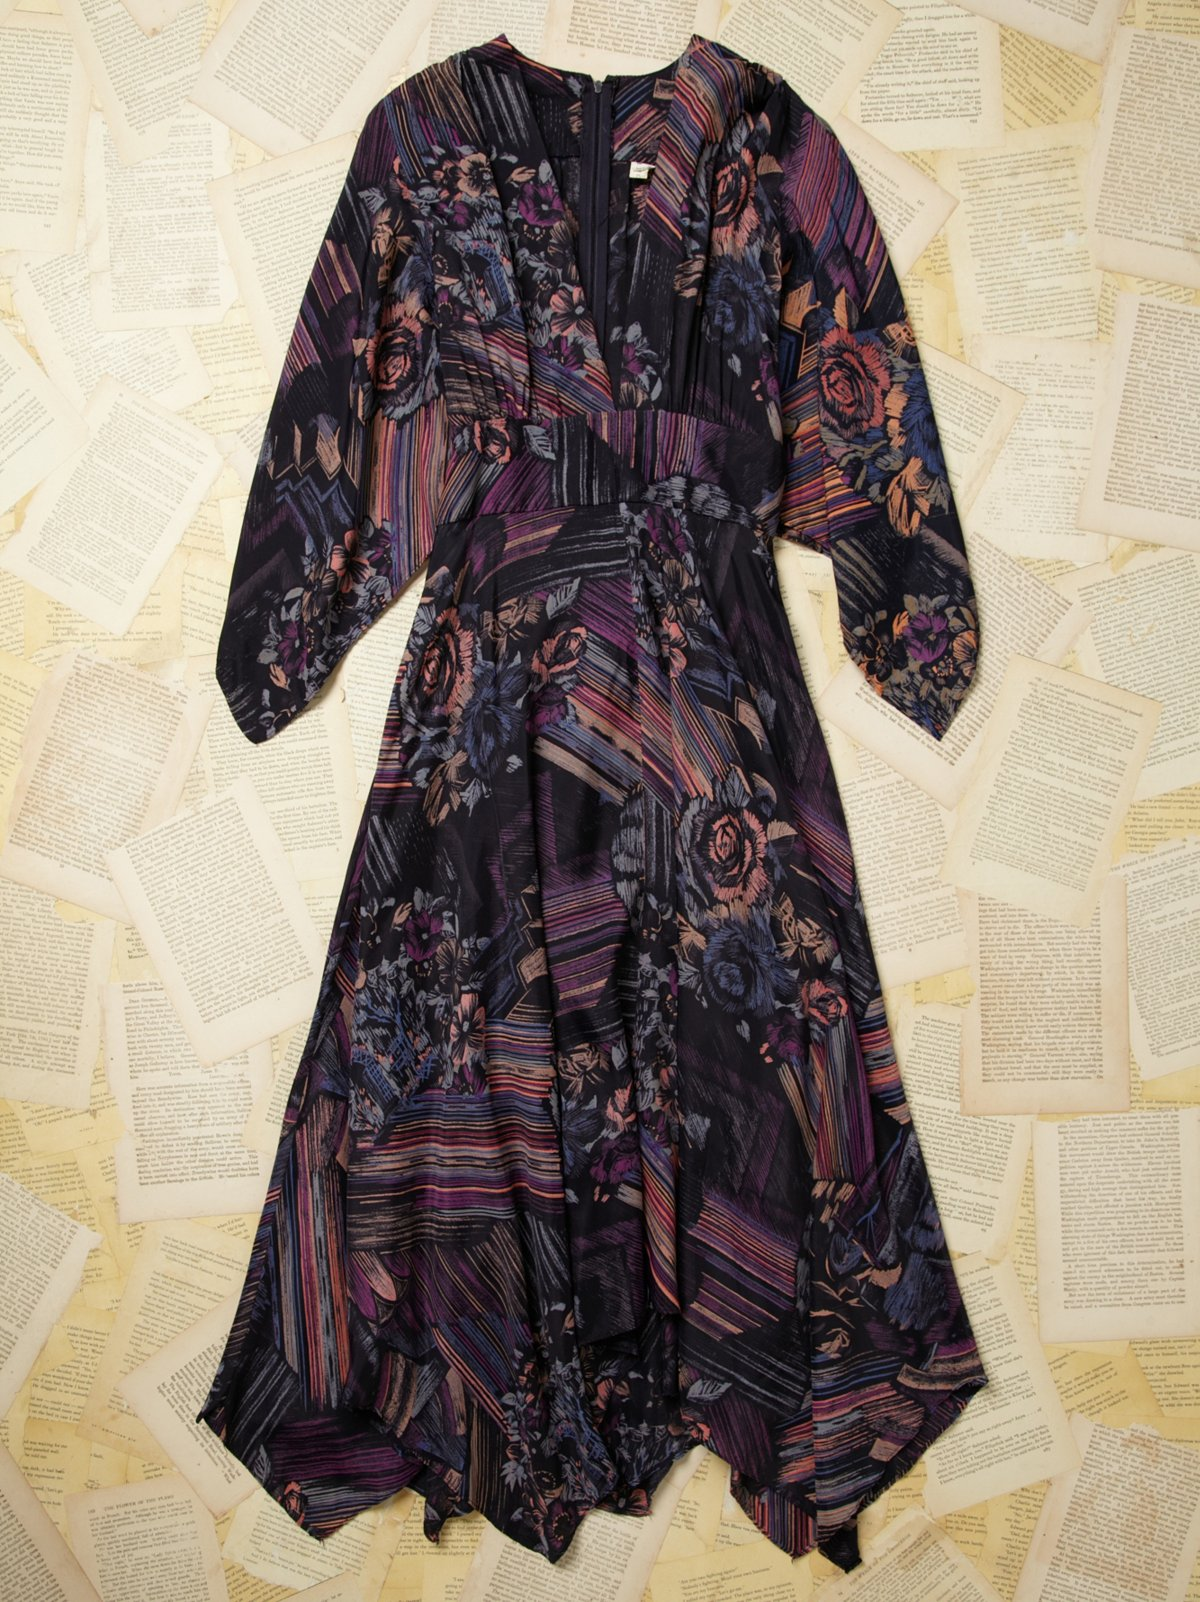 Vintage 1970s Bell Sleeve Printed Dress